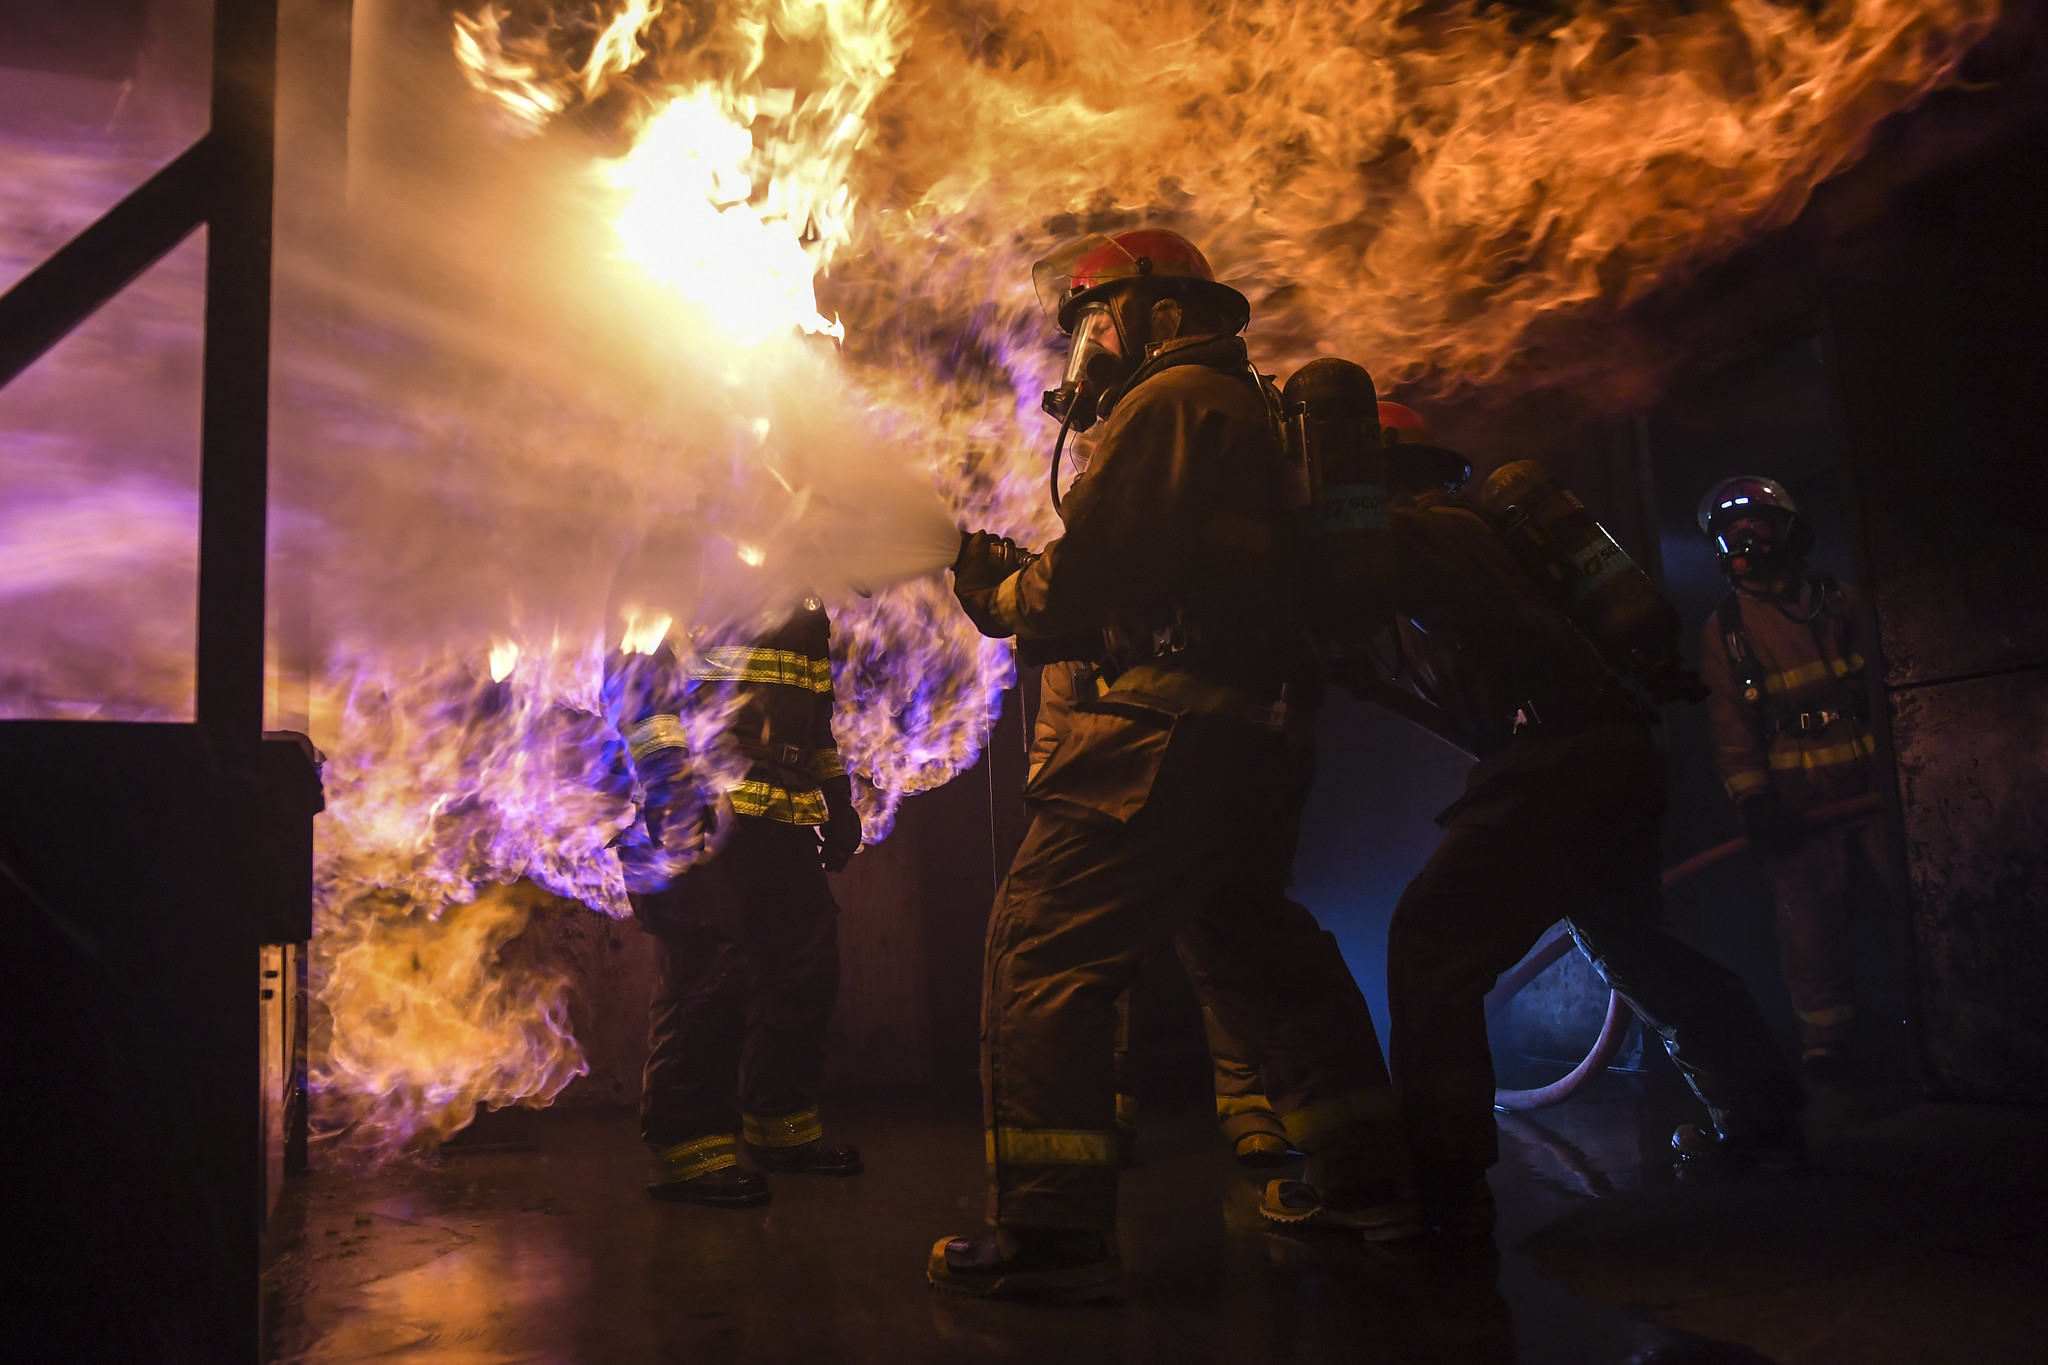 Sailors assigned to the aircraft carrier USS Carl Vinson (CVN 70) and the Arleigh Burke-class guided-missile destroyer USS Grimley (DDG 101) practice firefighting skills and techniques on May 15, 2019, by battling a simulated fire at the Bremerton International Emergency Services Training Center (BIESTC) in Washington state. (Mass Communication Specialist 2nd Class Wyatt L. Anthony/Navy)